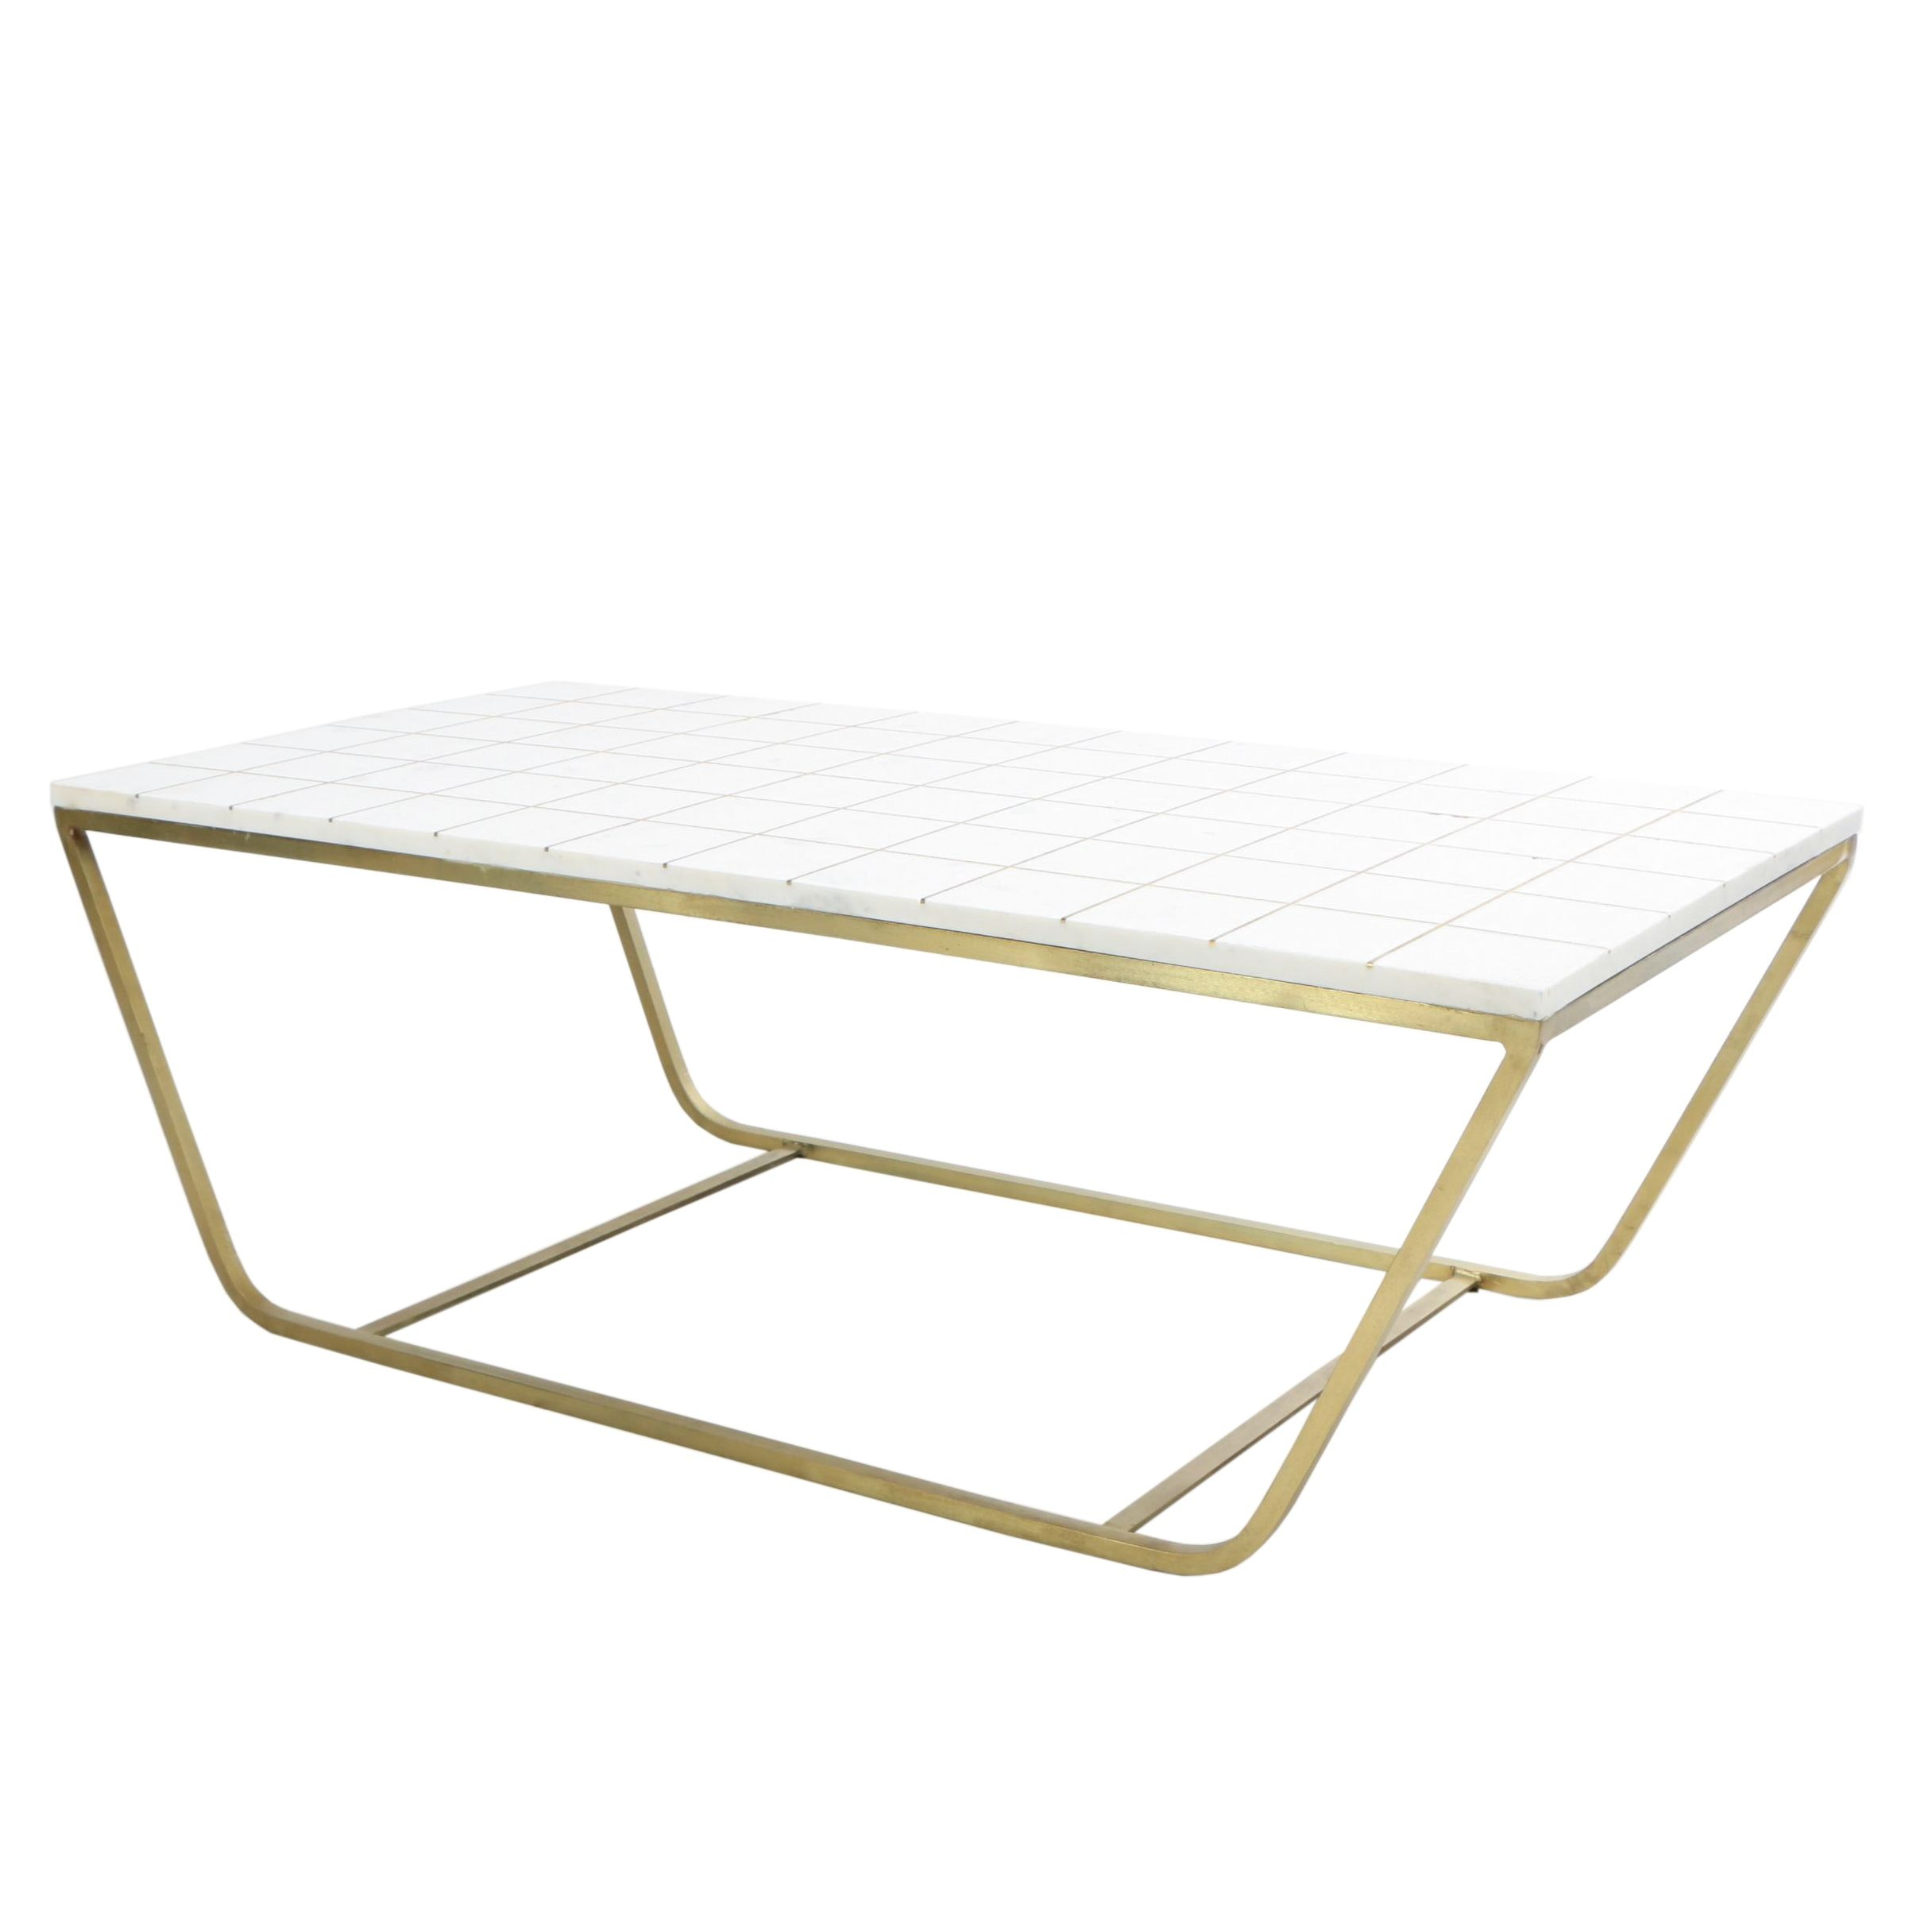 "Gold Tone Metal and Marble ""Regents"" Coffee Table"